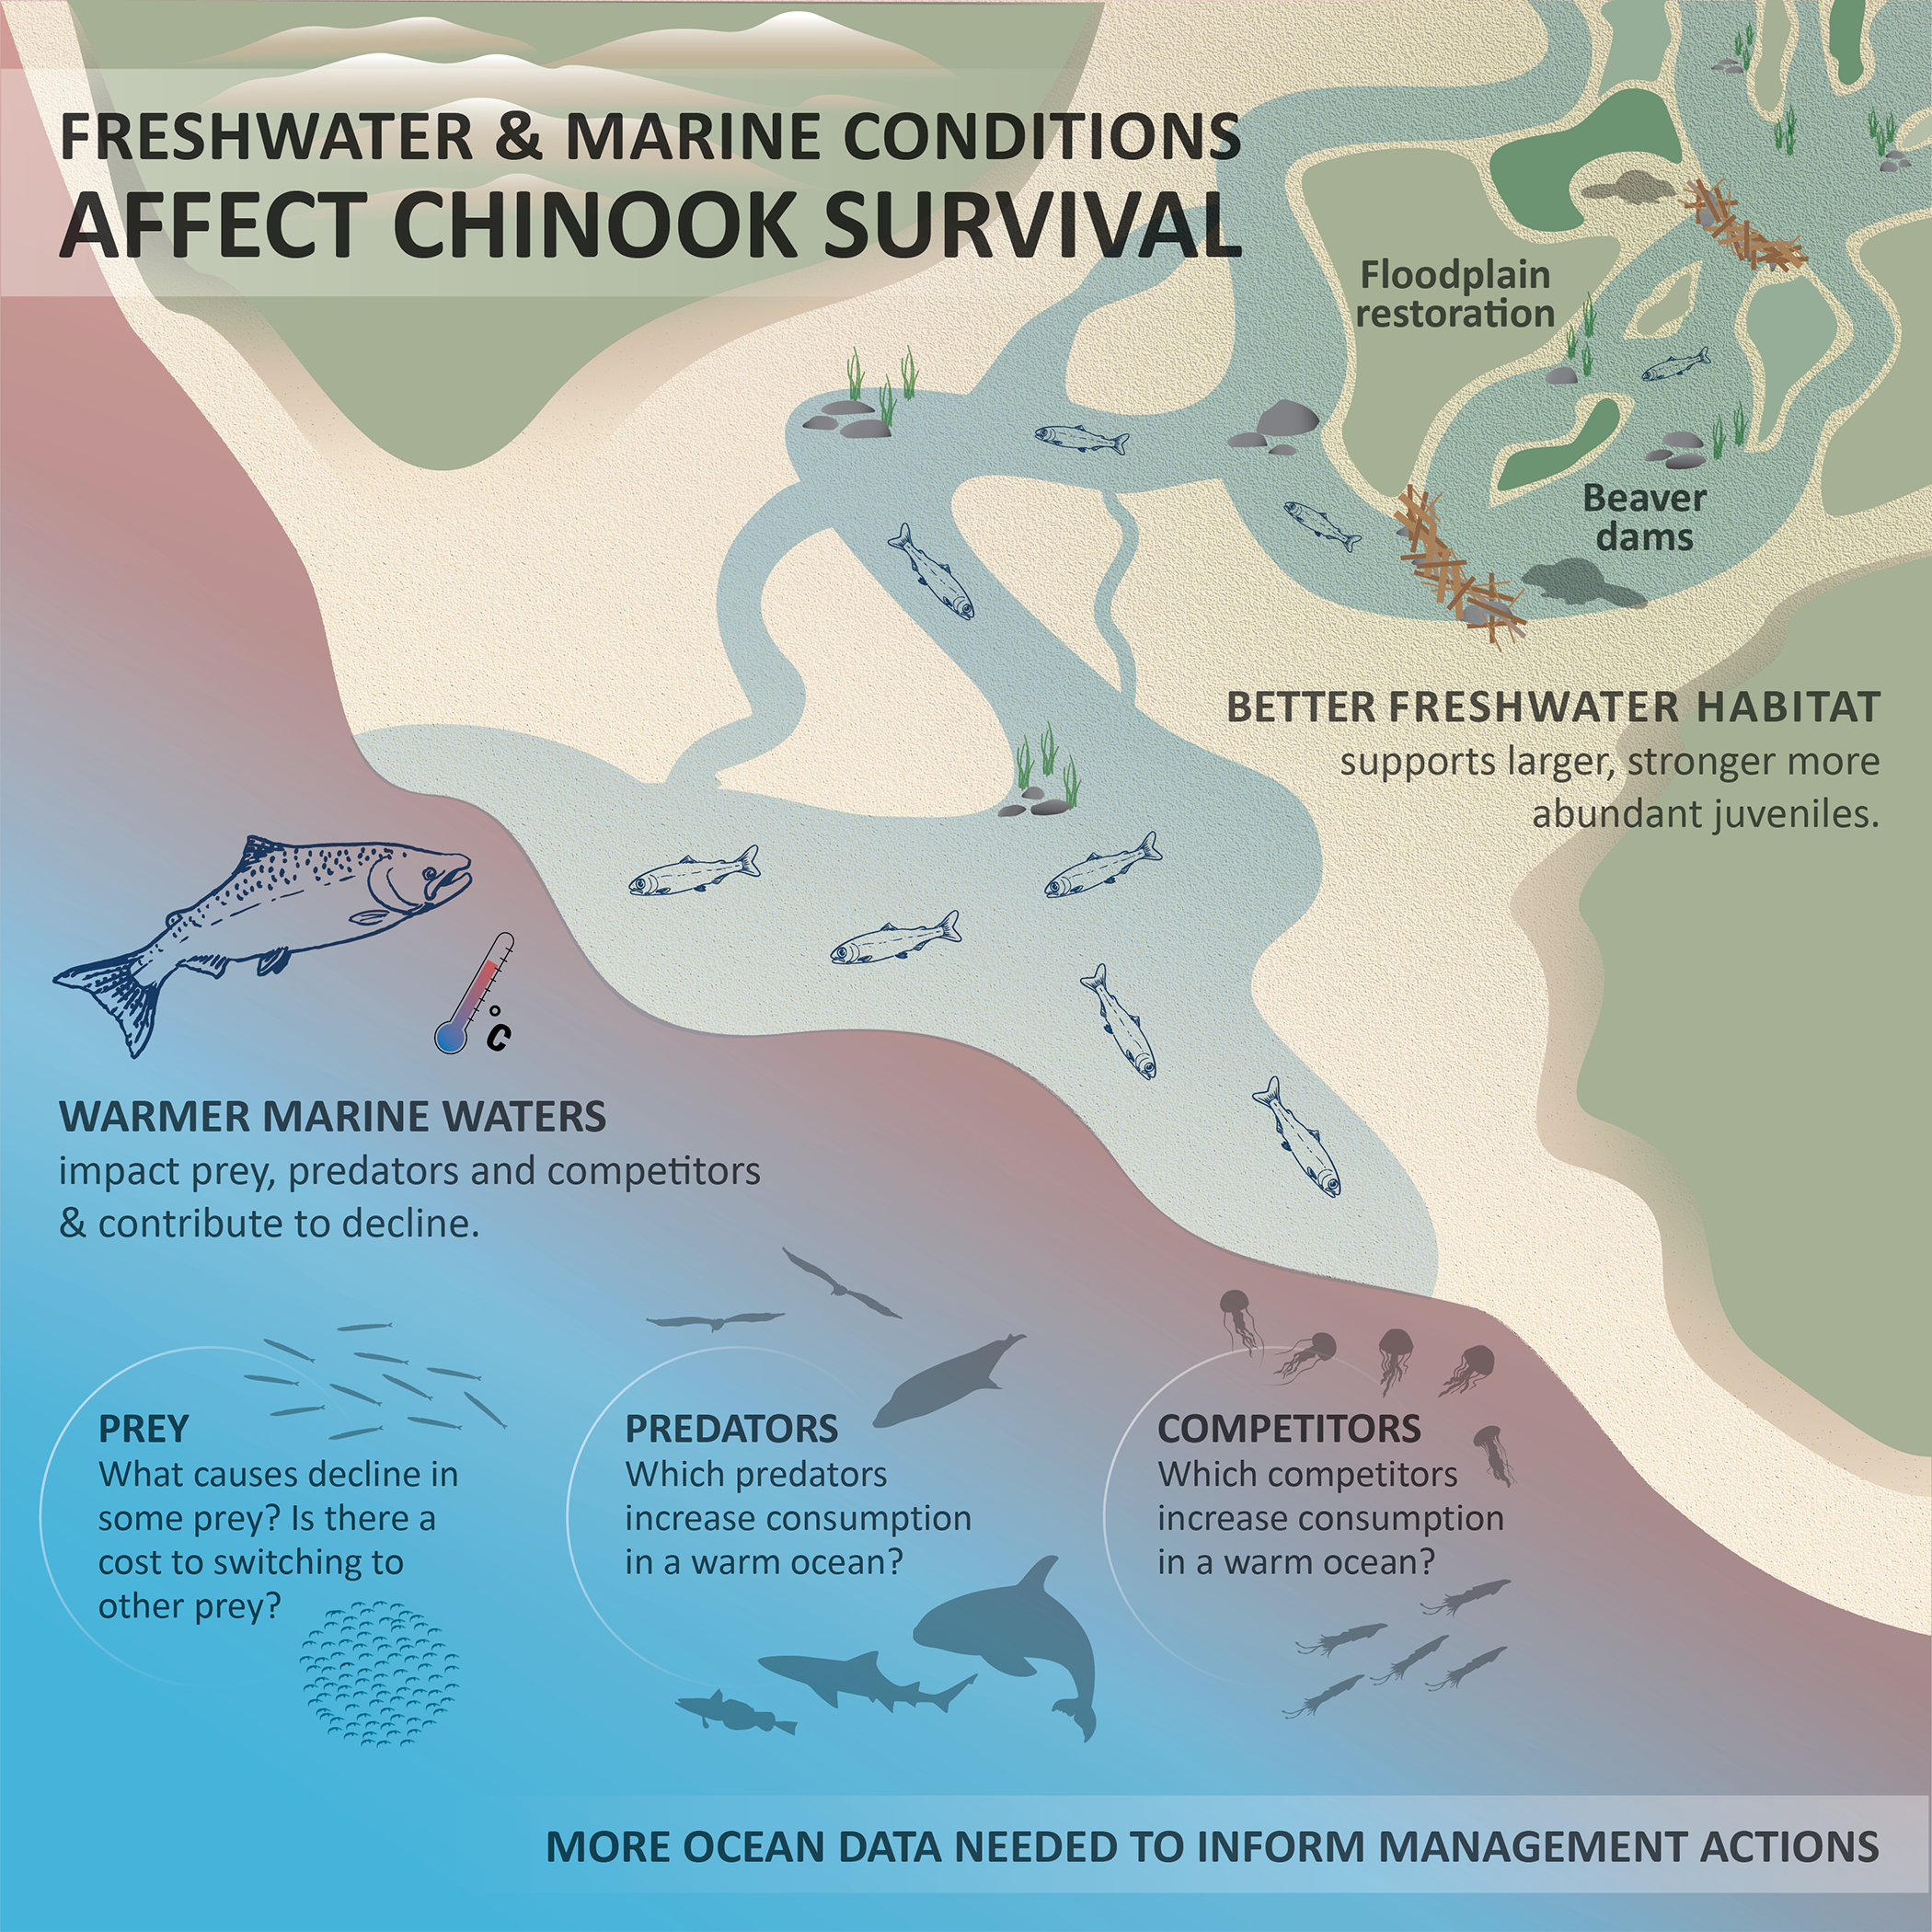 Better habitat, like beaver dams and restored floodplains, may be able to help Chinook survival in face of declines in prey, increase in predators, and increase in competitors.